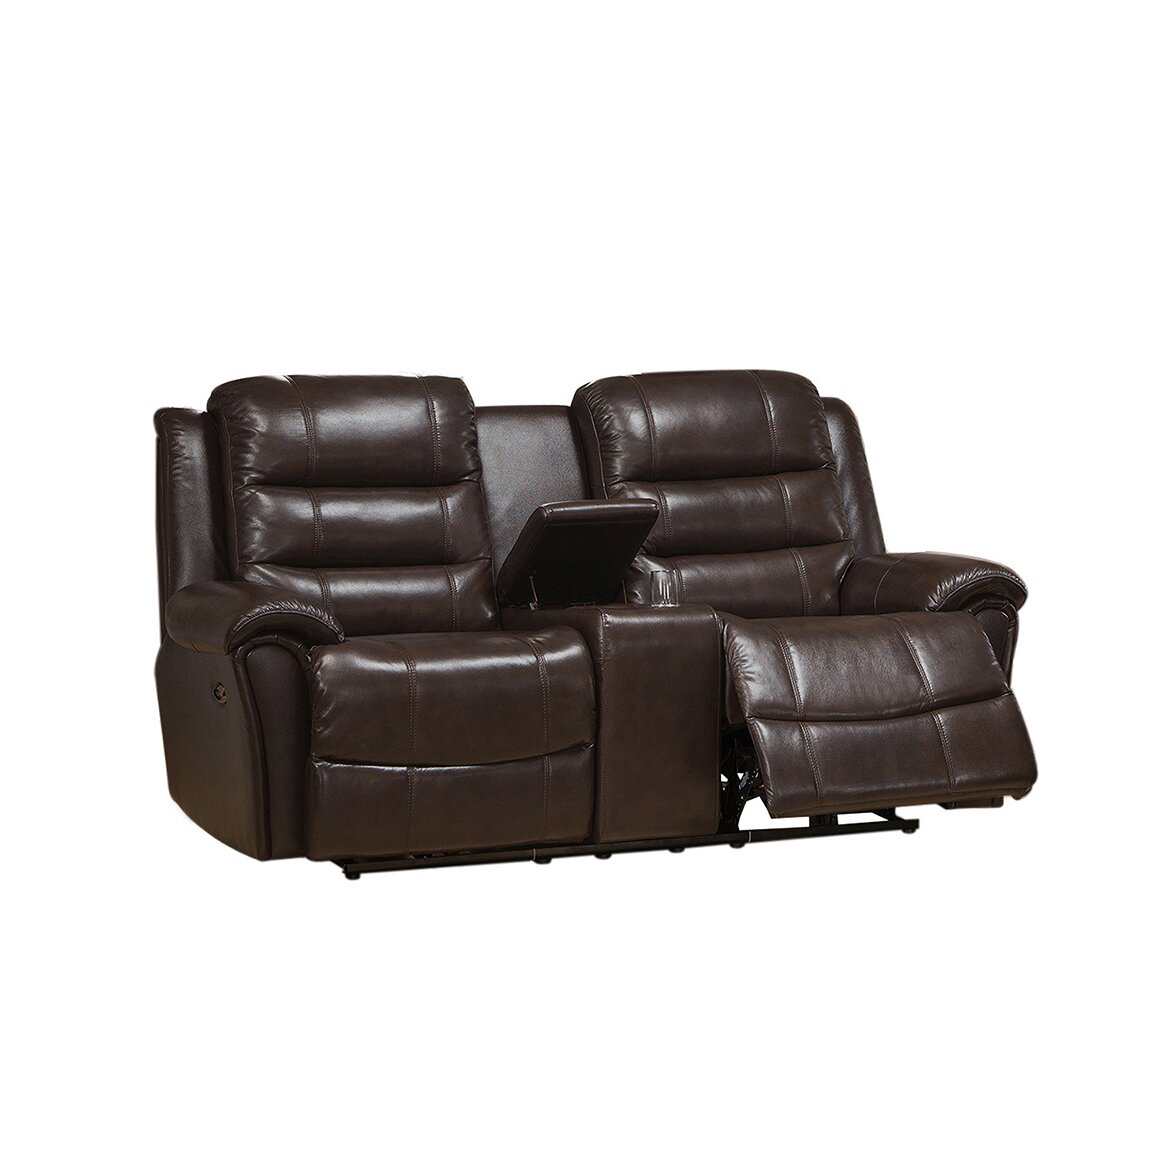 Astoria leather recliner sofa and loveseat set wayfair for Leather sofa and loveseat set